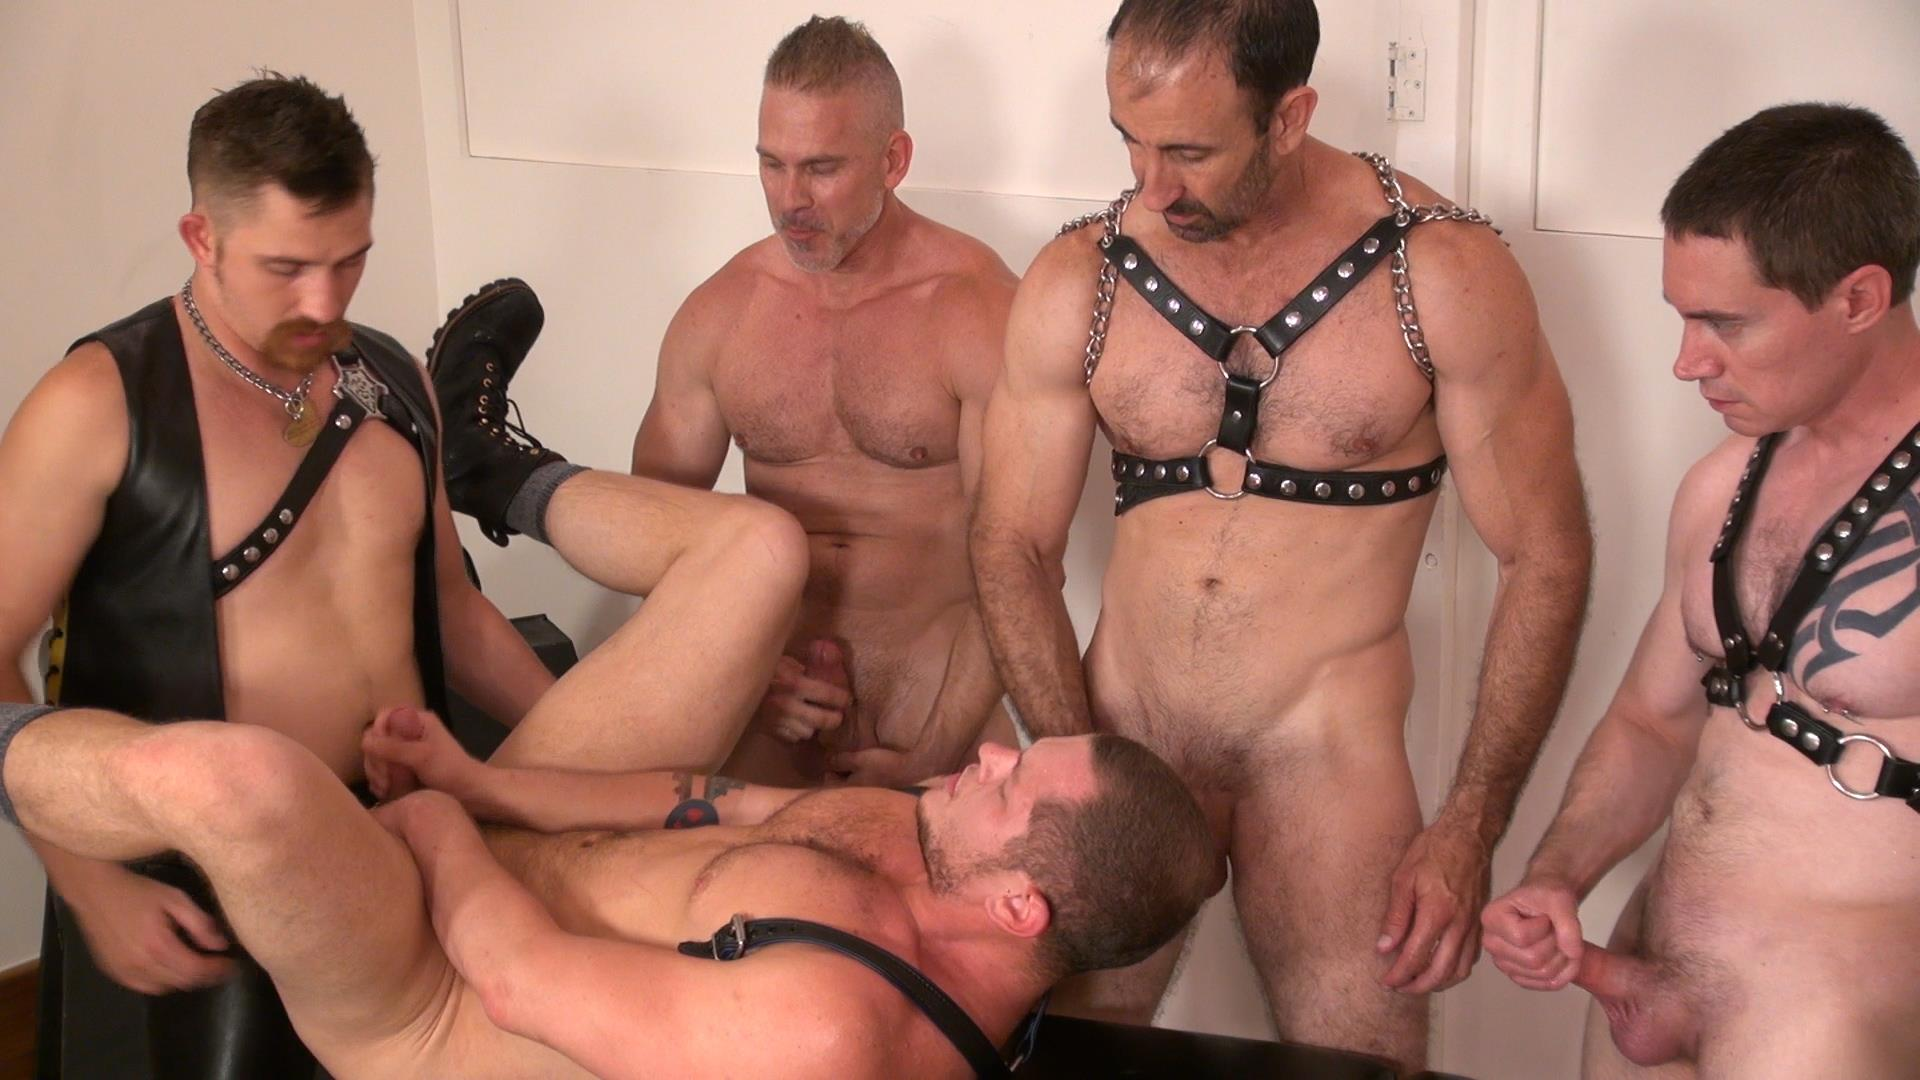 Raw-and-Rough-Jason-Mitchell-Steven-Richards-Sam-Dixon-Blue-Bailey-Dayton-OConnor-Jose-del-Toro-Bareback-Bathhouse-Amateur-Gay-Porn-10 Blue Bailey Getting Fucked Bareback By 5 Guys At A Bathhouse